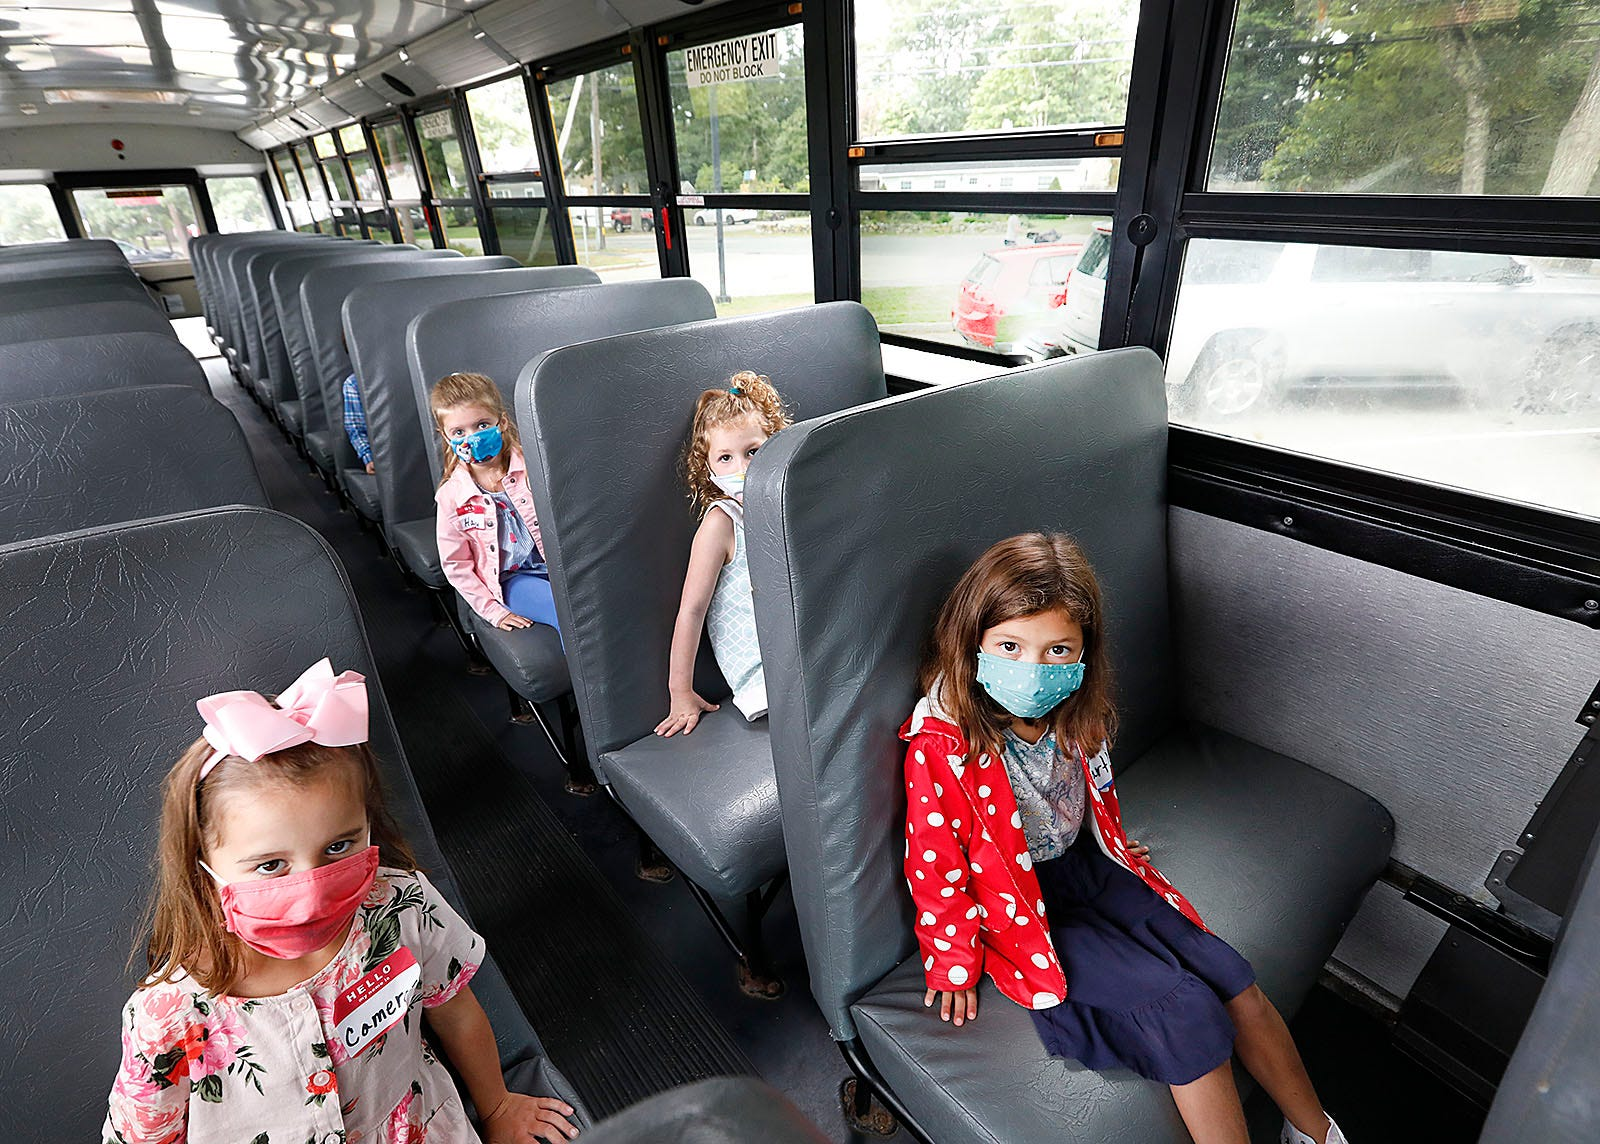 New kindergarten students at the Chandler School get familiar with how to ride the bus, one student per seat on Tuesday, Sept. 8, 2020.